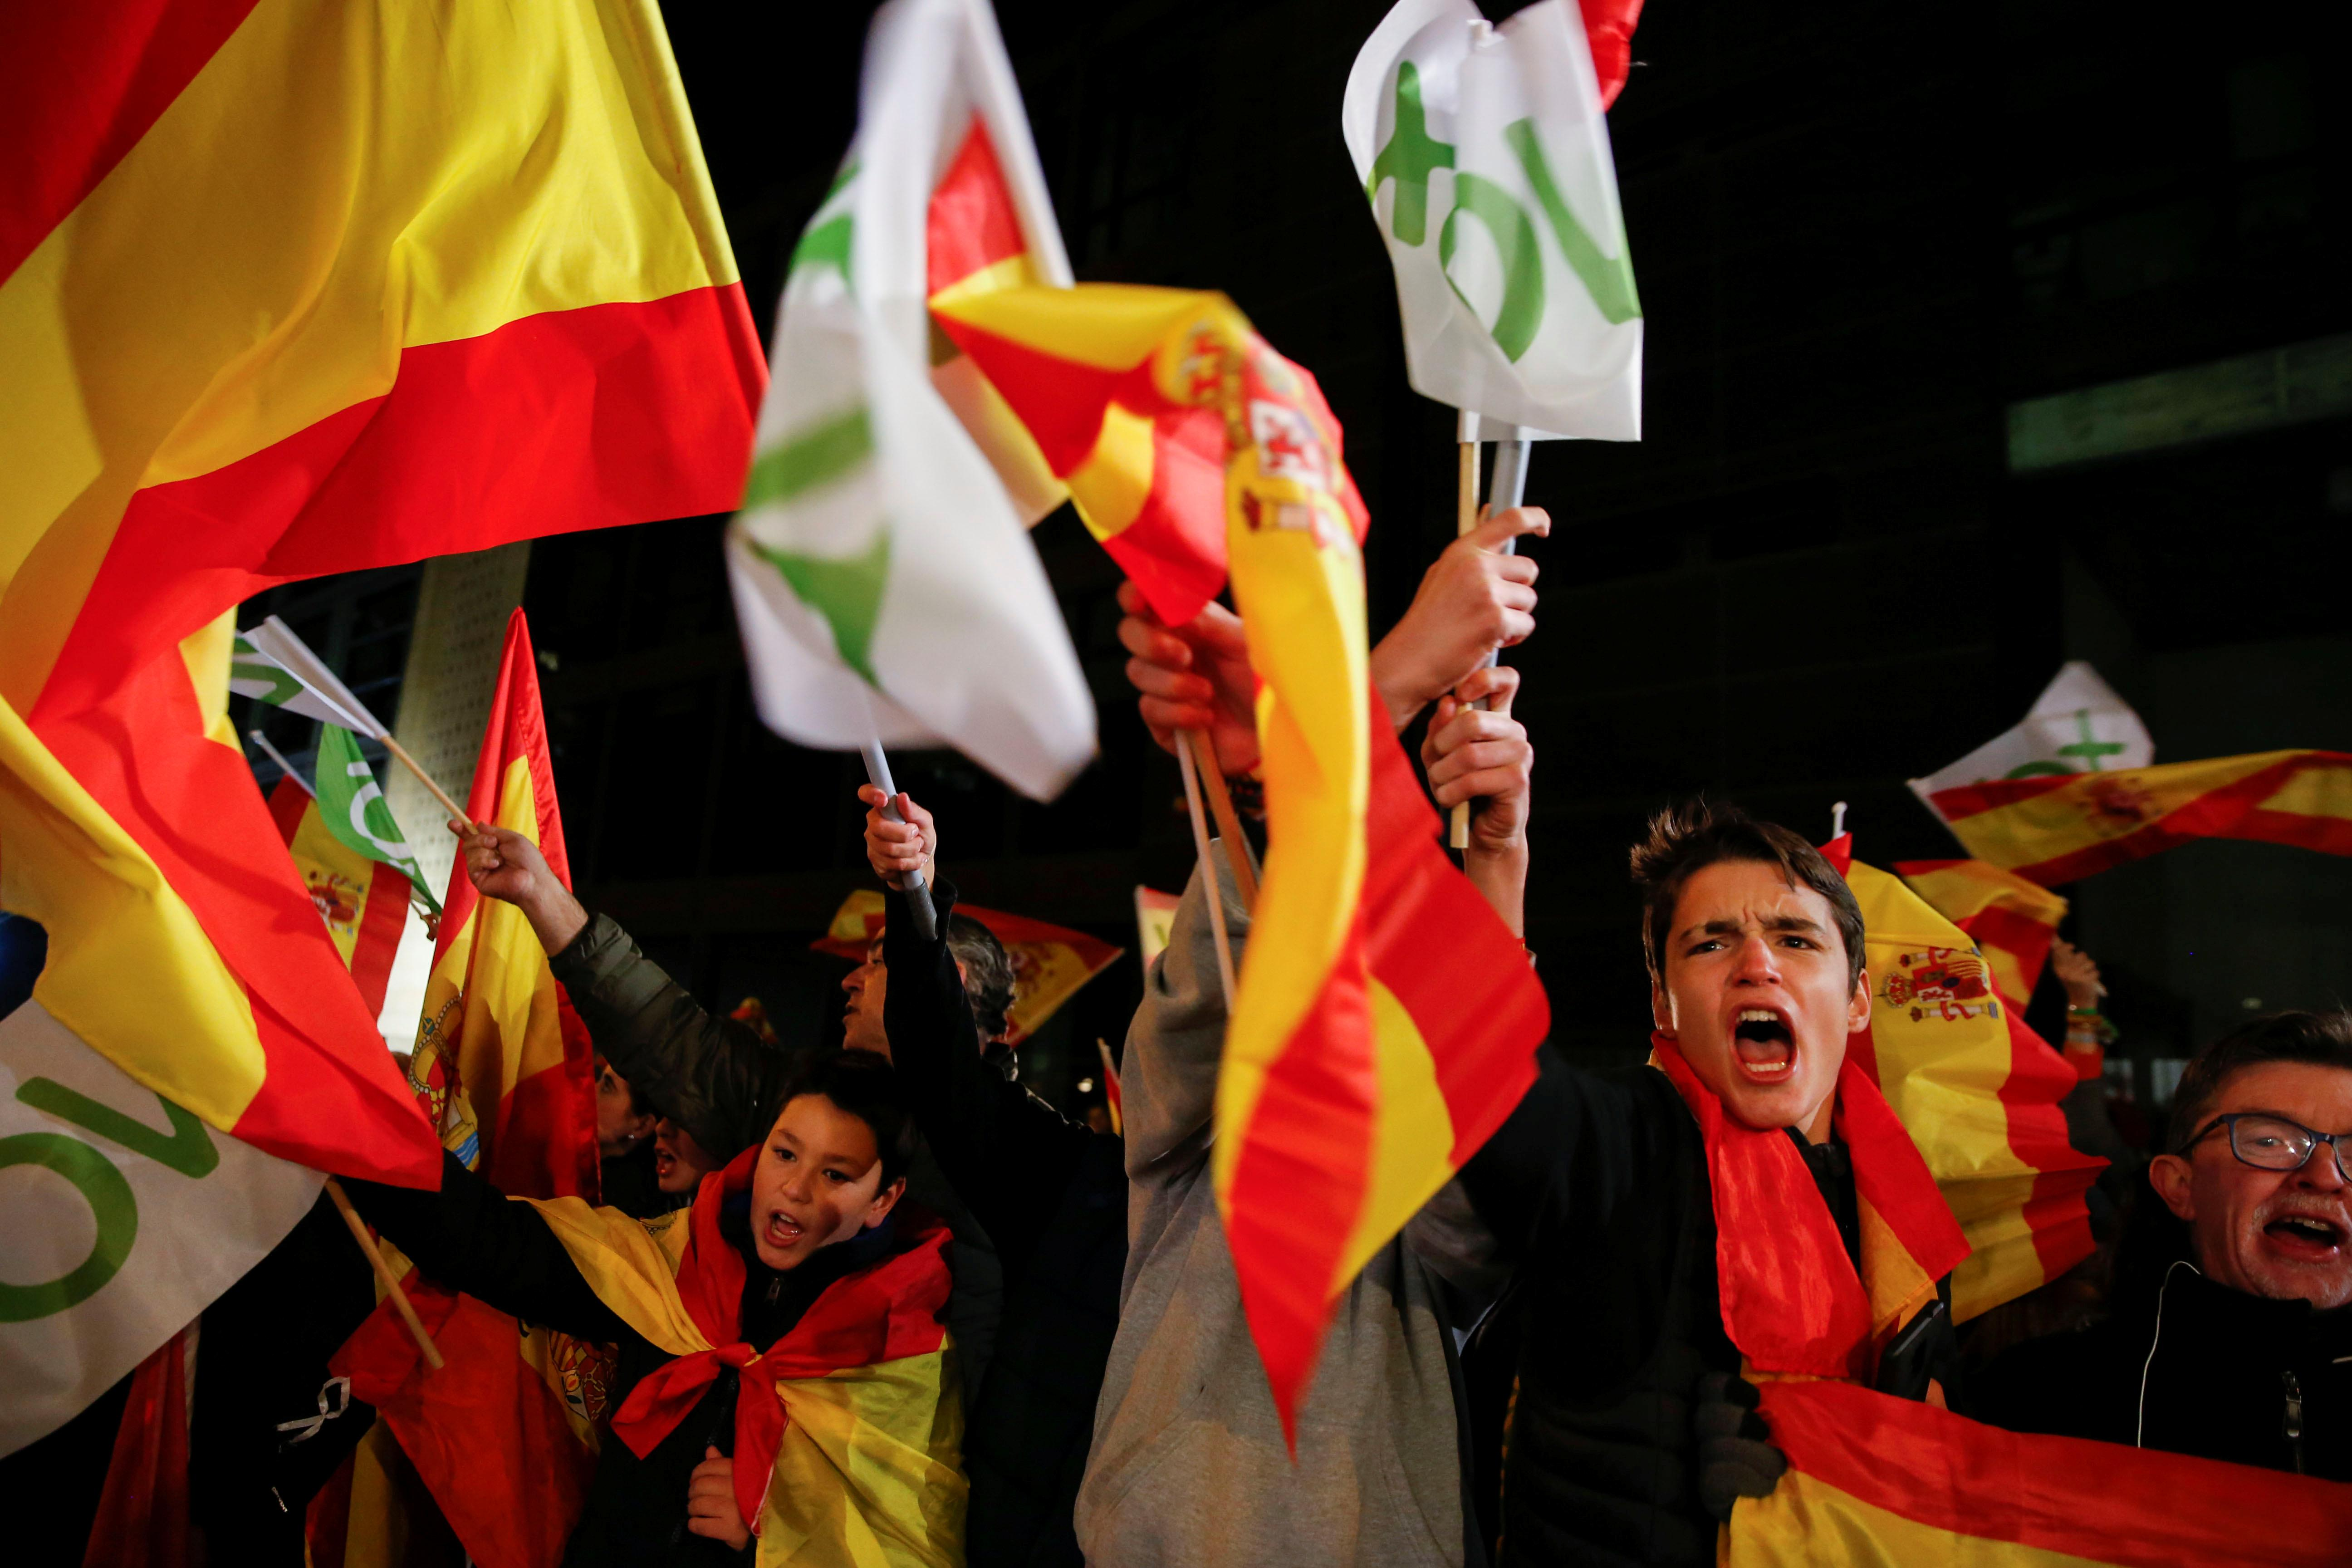 Spain's far right doubles seats in hung parliament, difficult talks...